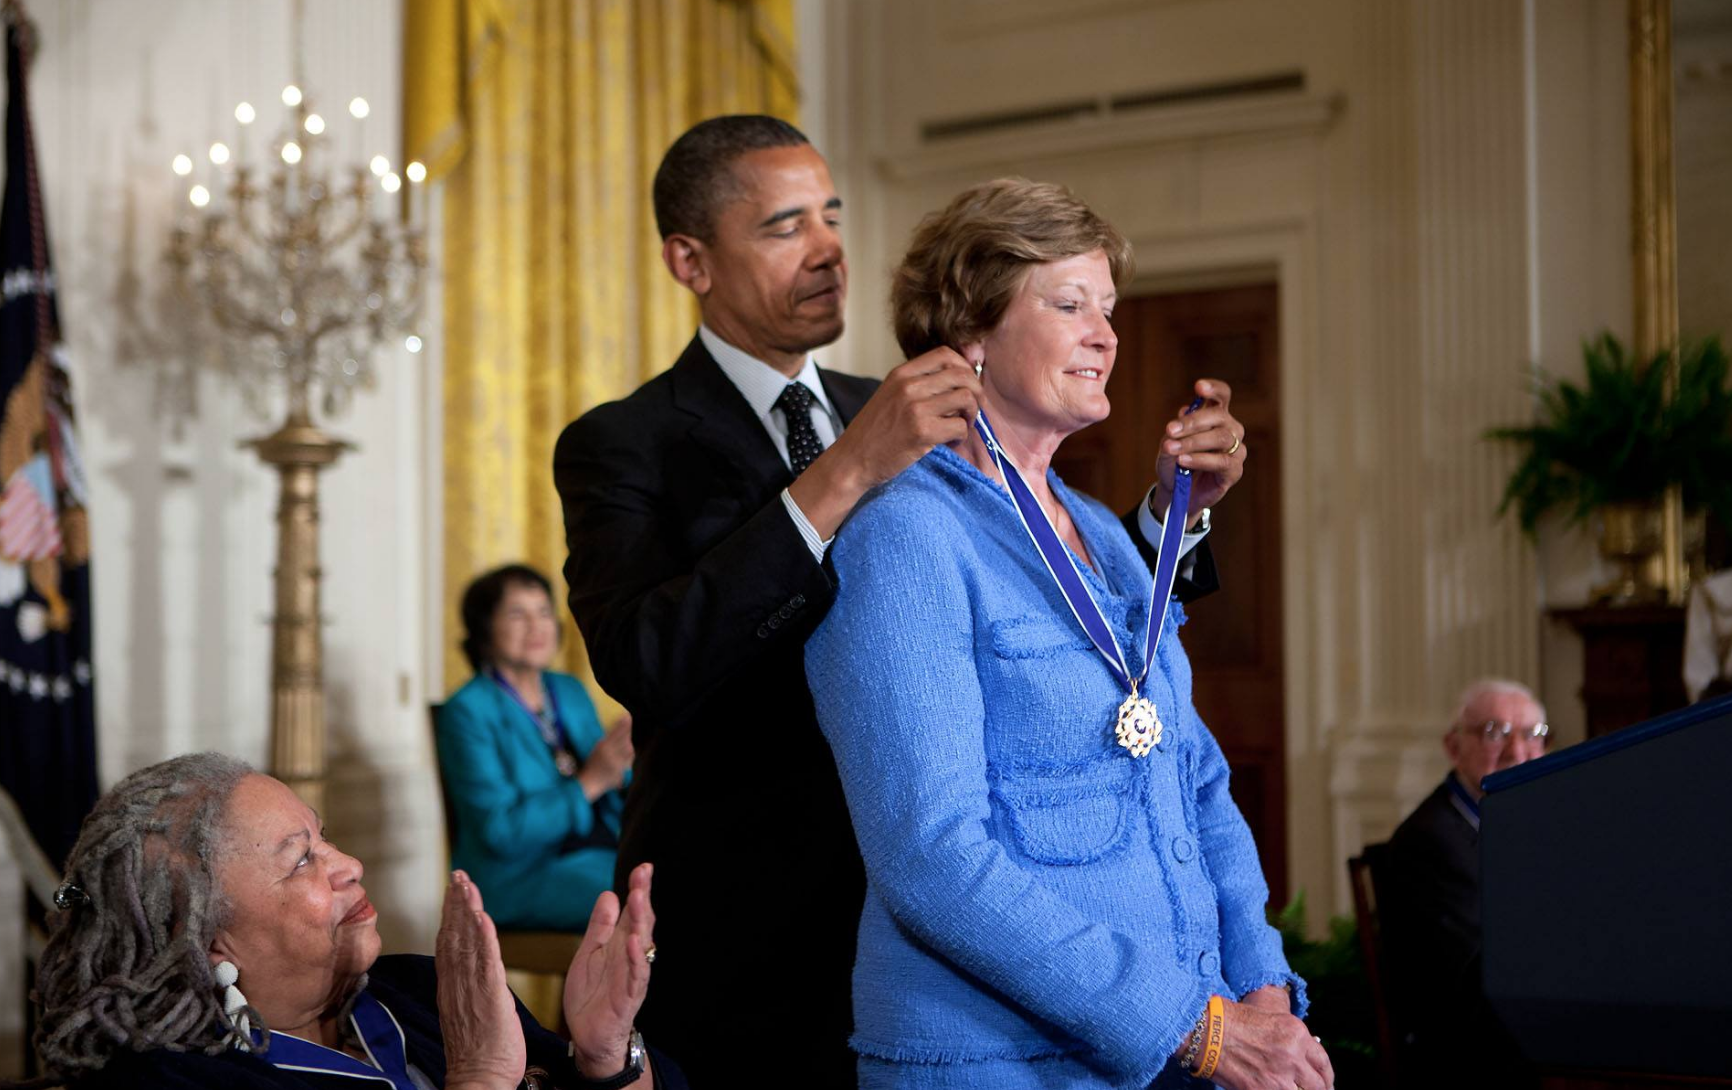 Pat Summitt wins medal